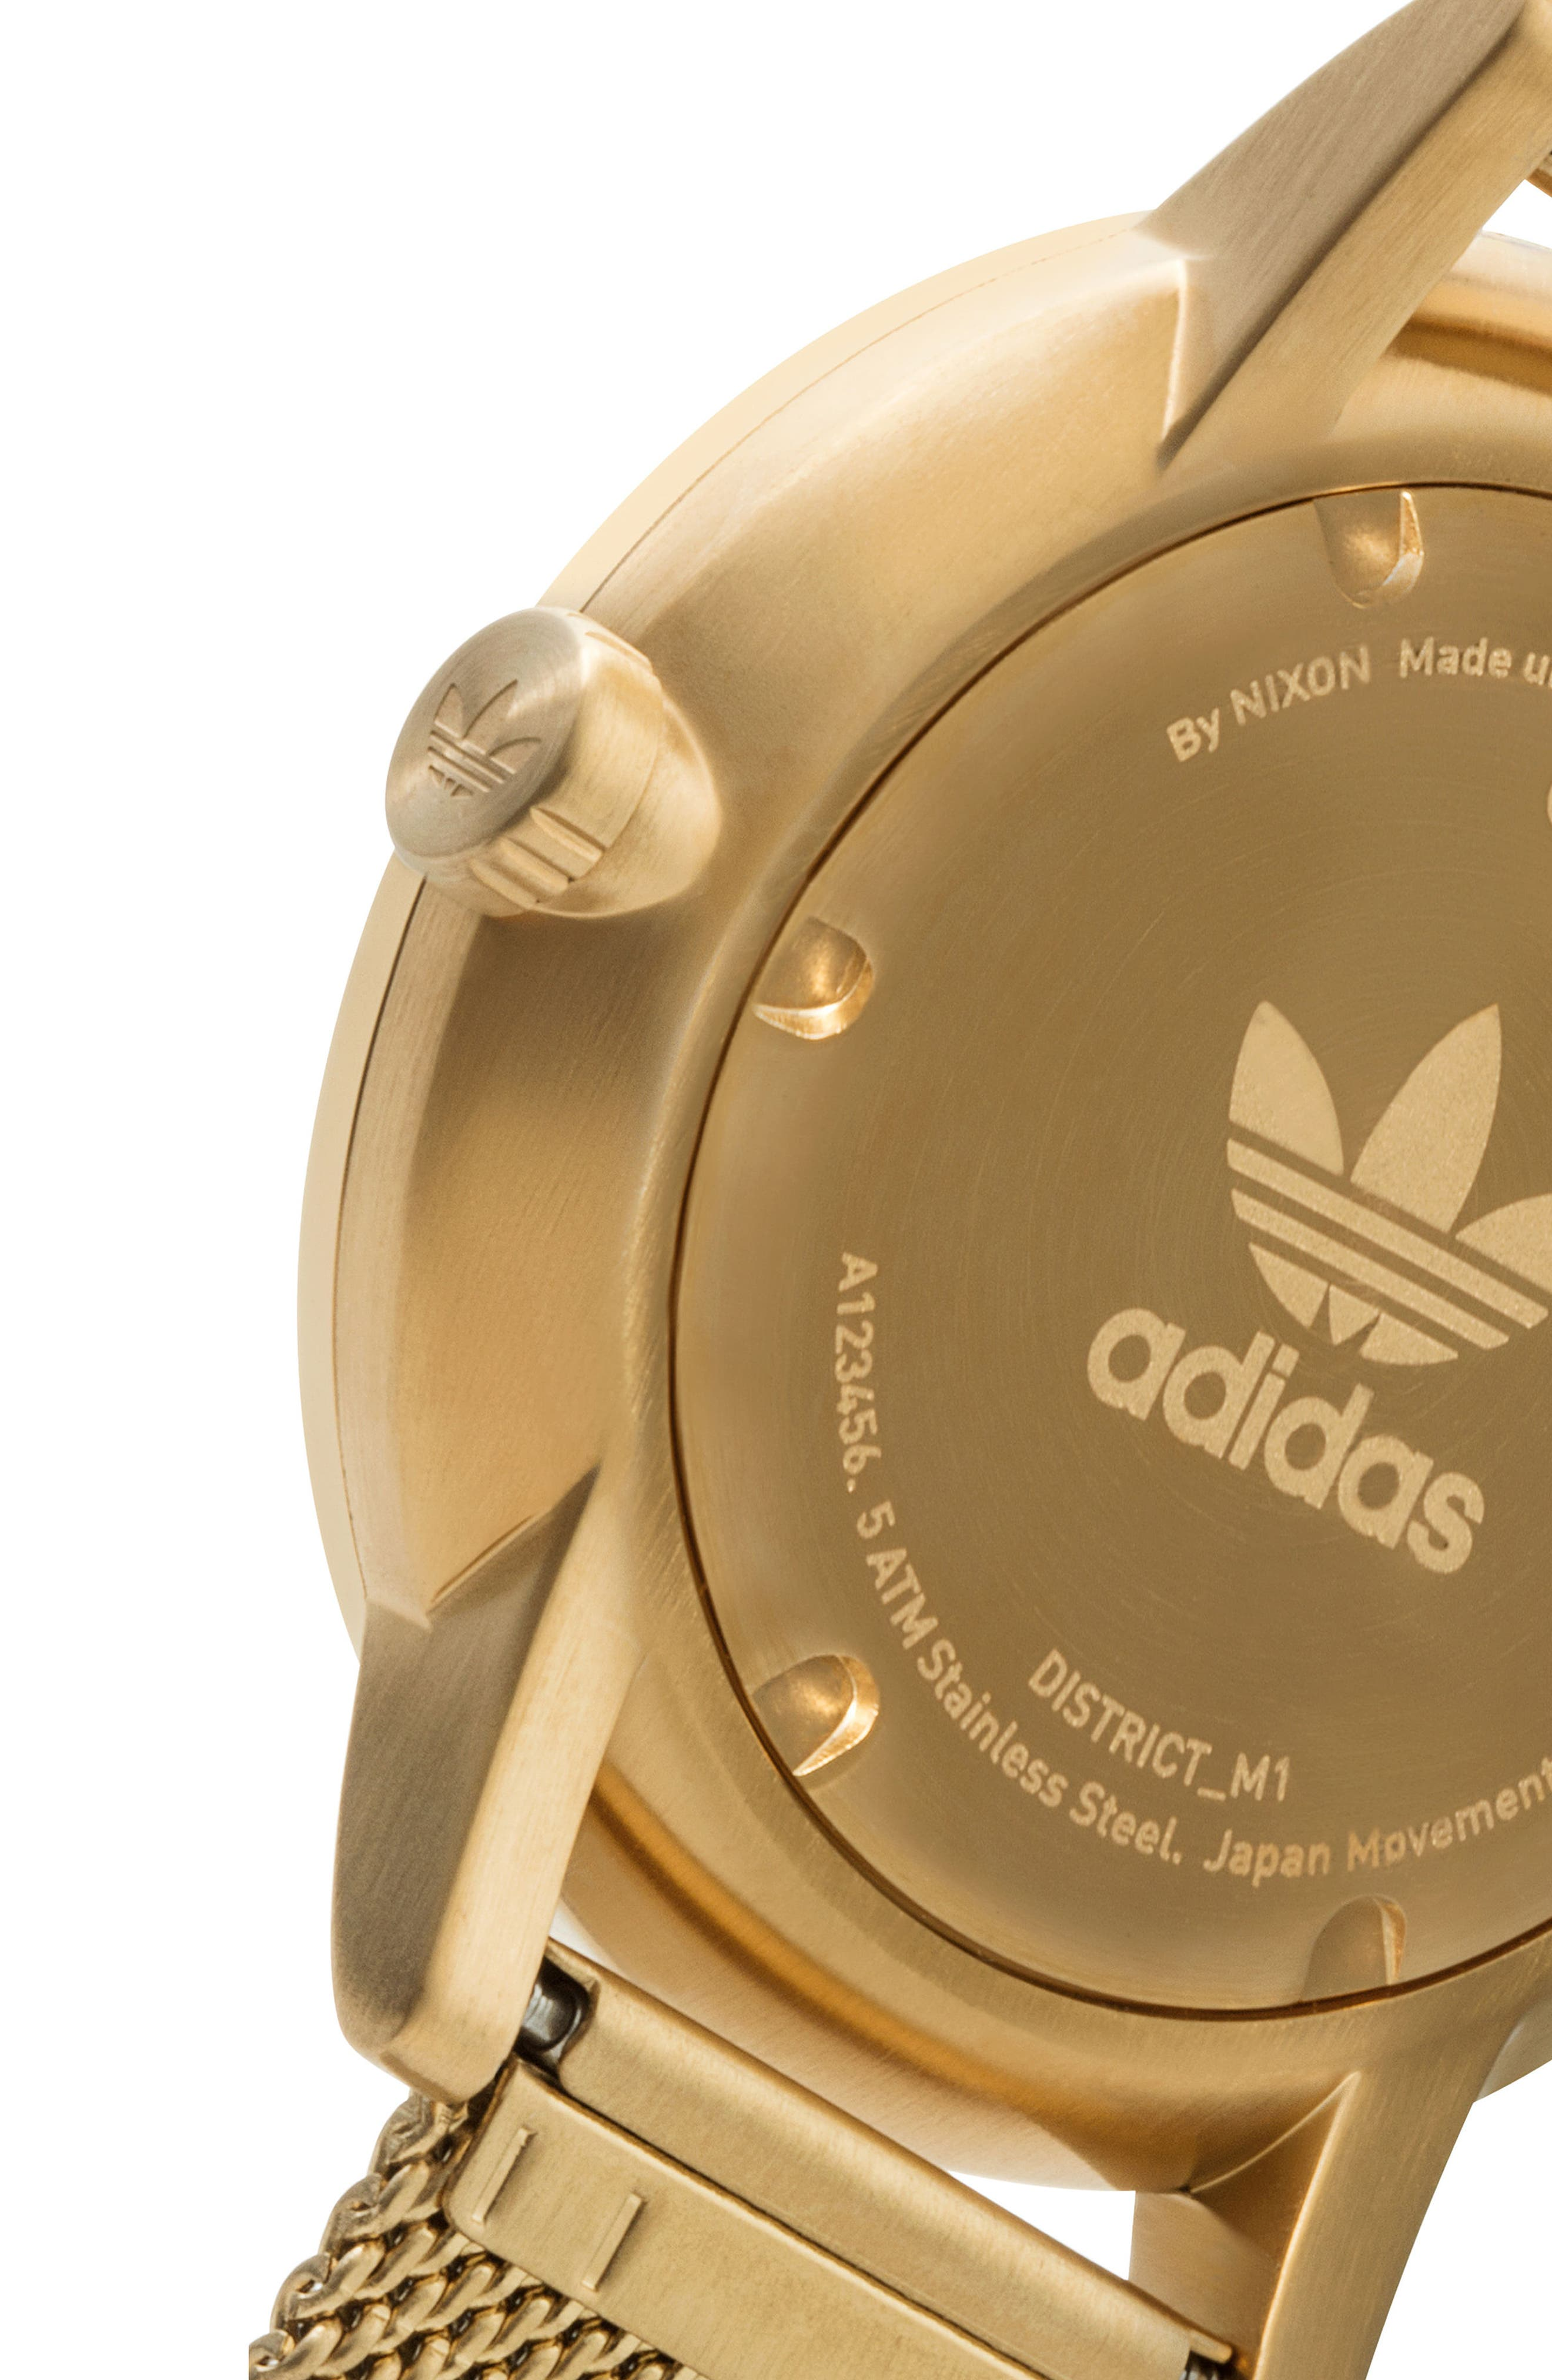 ADIDAS, District Milanese Bracelet Watch, 40mm, Alternate thumbnail 4, color, GOLD/ BLACK